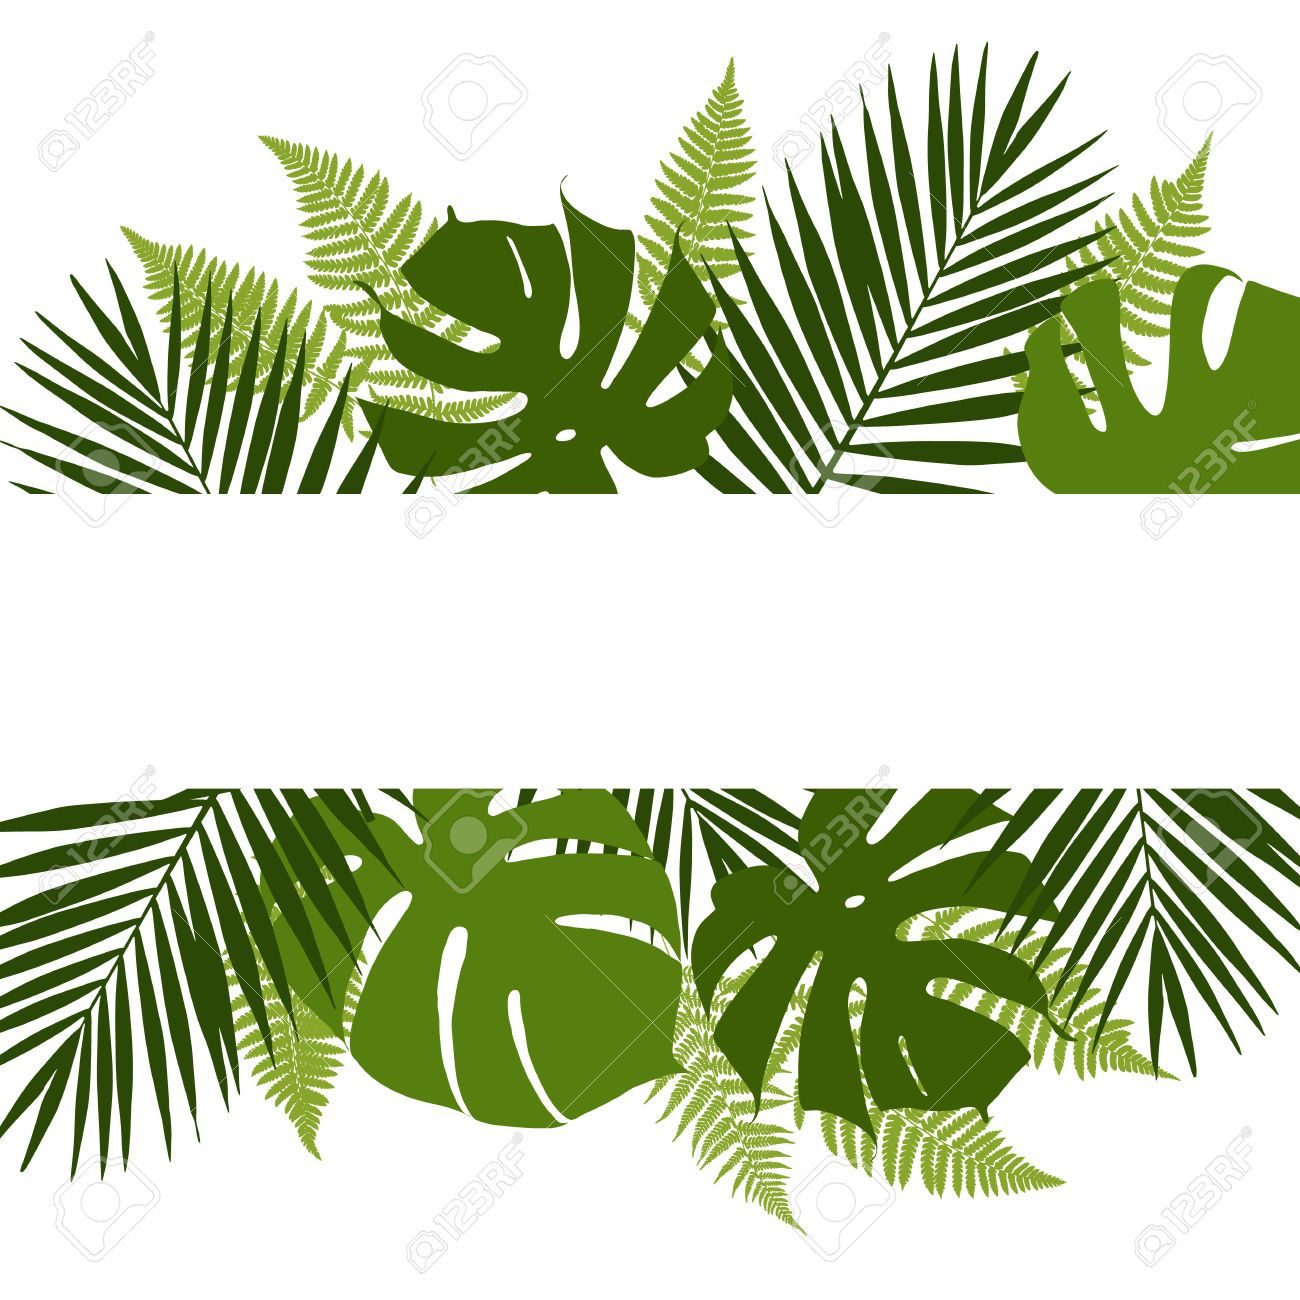 328,777 Jungle Stock Vector Illustration And Royalty Free.